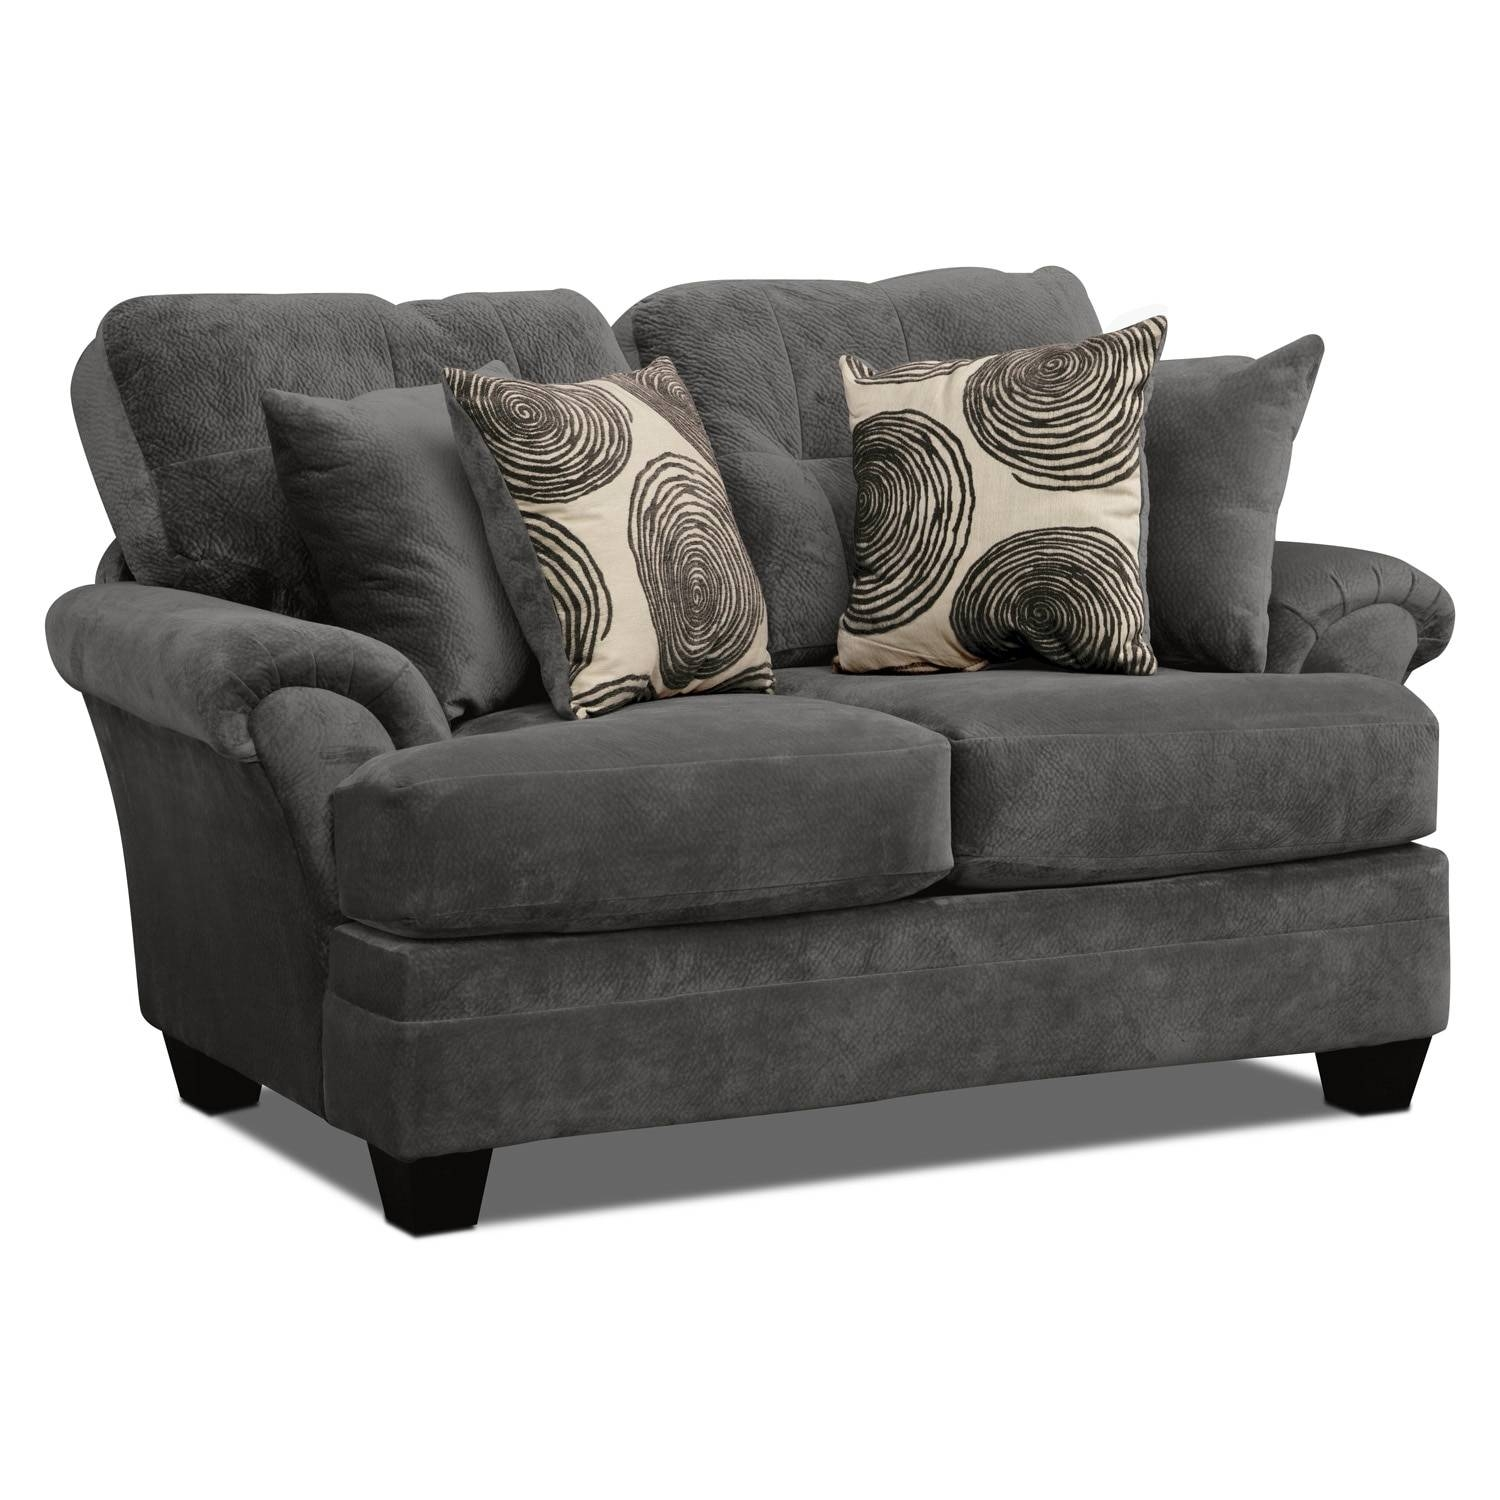 Cordelle Sofa, Loveseat And Swivel Chair Set – Gray | Value City Intended For Swivel Sofa Chairs (View 5 of 30)